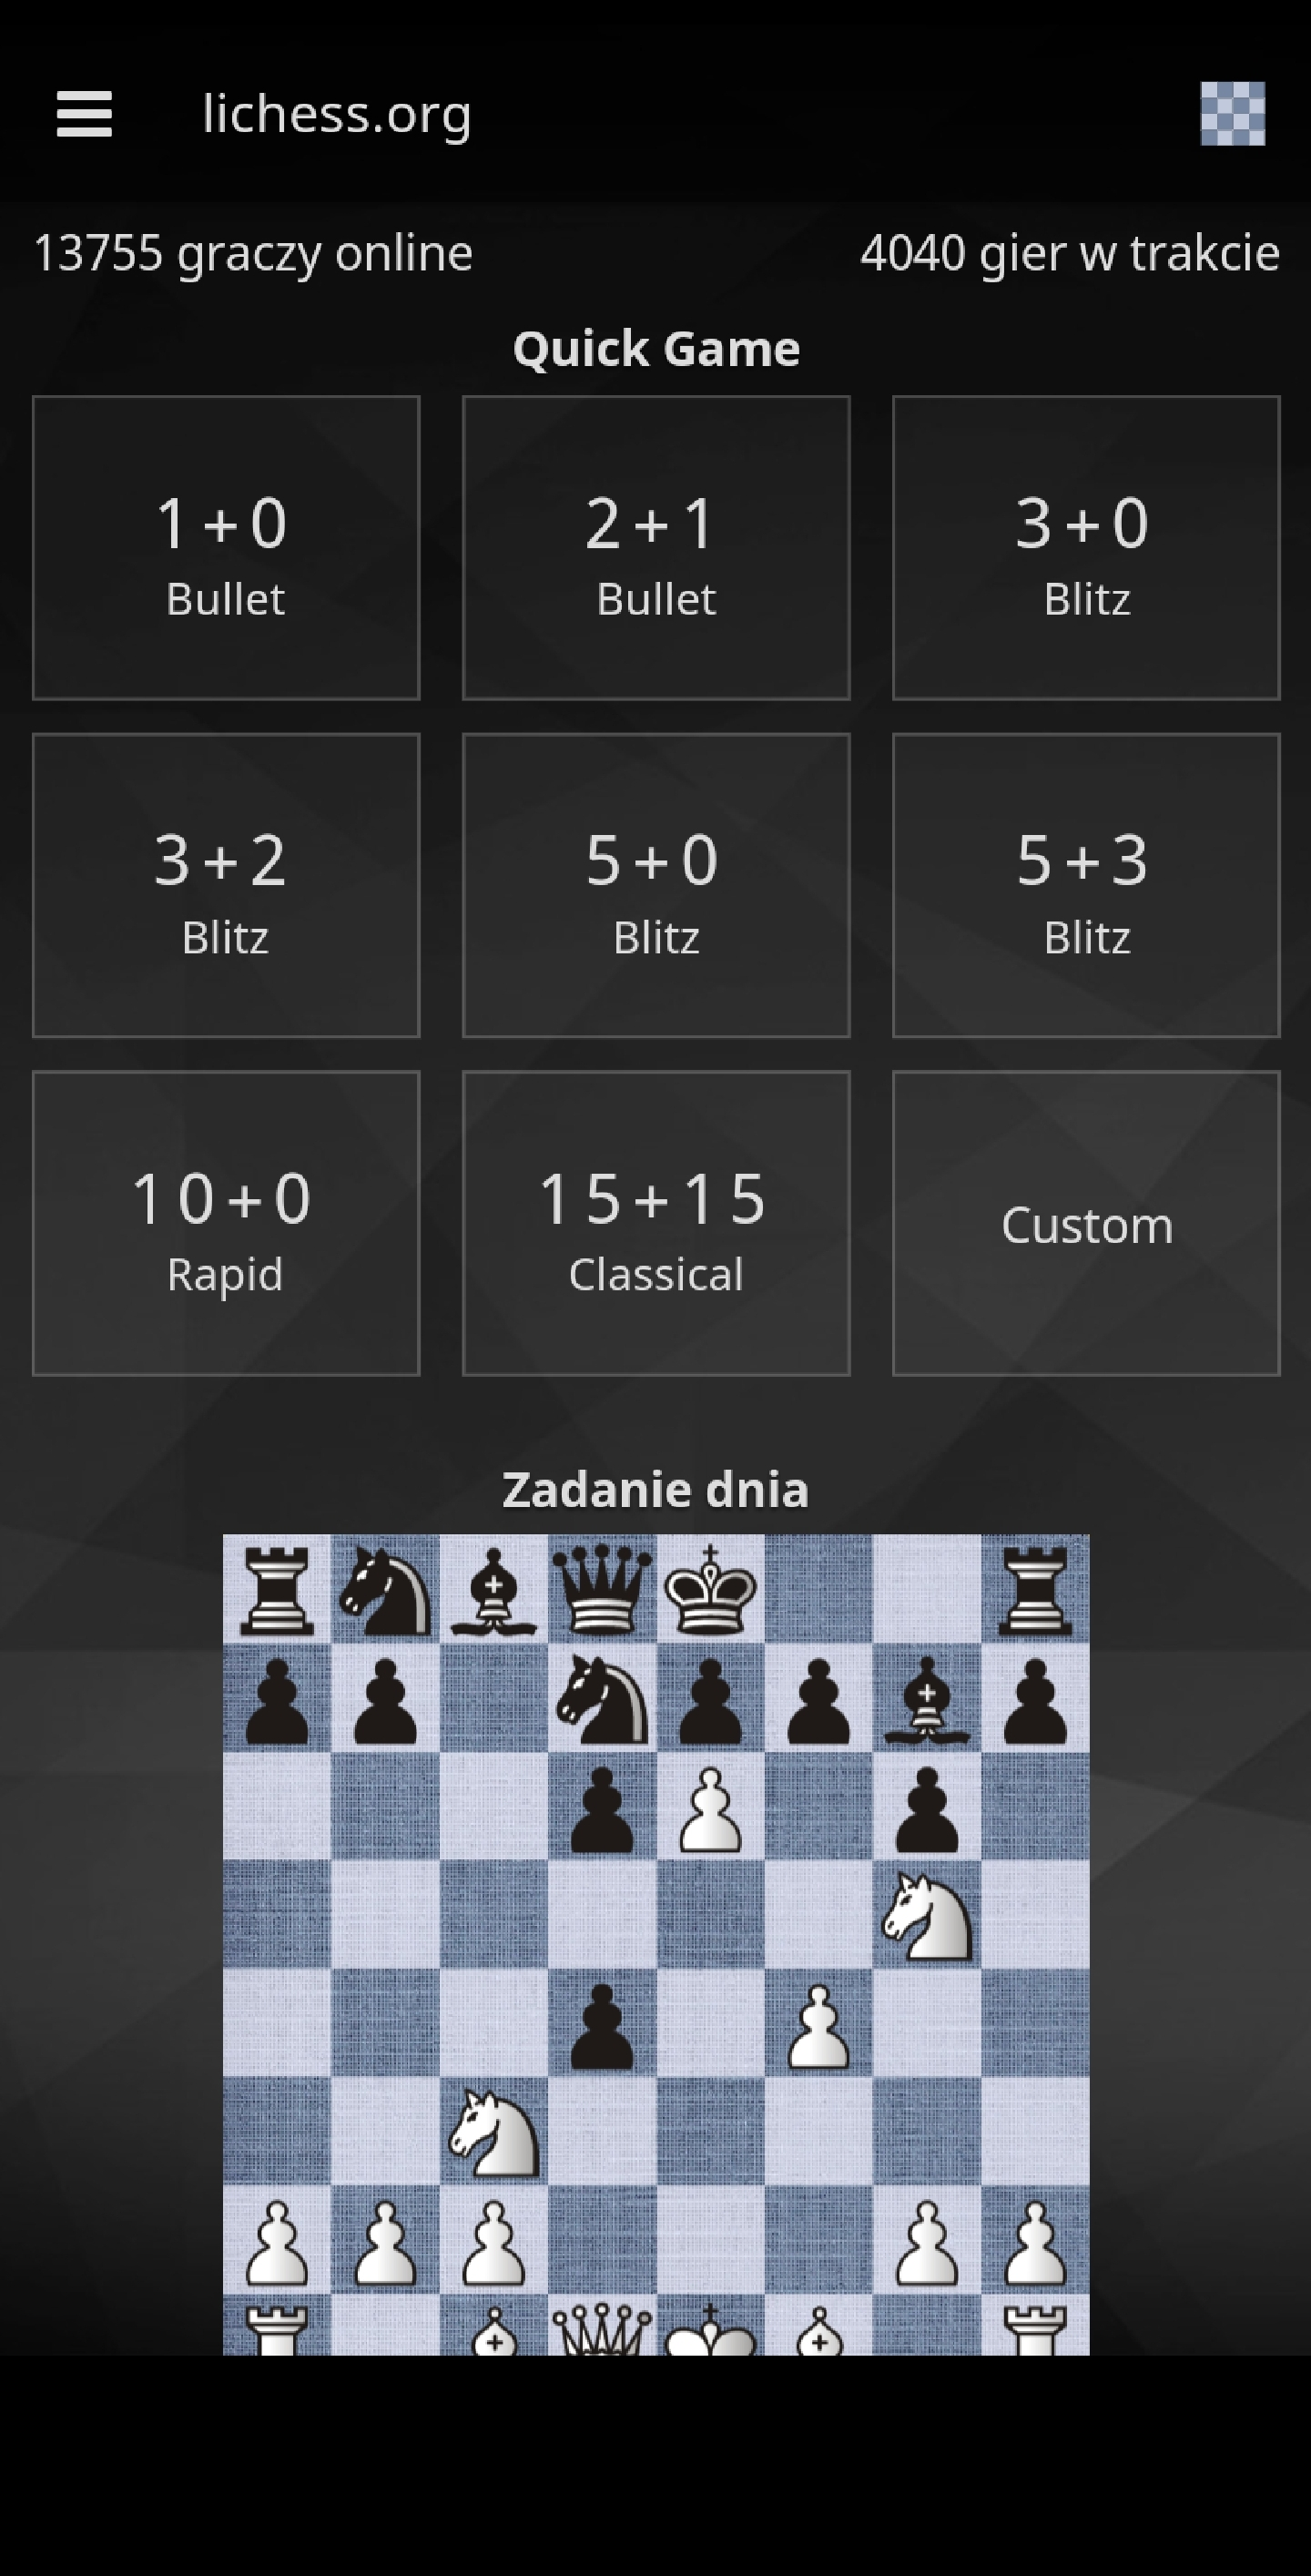 Screenshot_20180601-090211_lichess